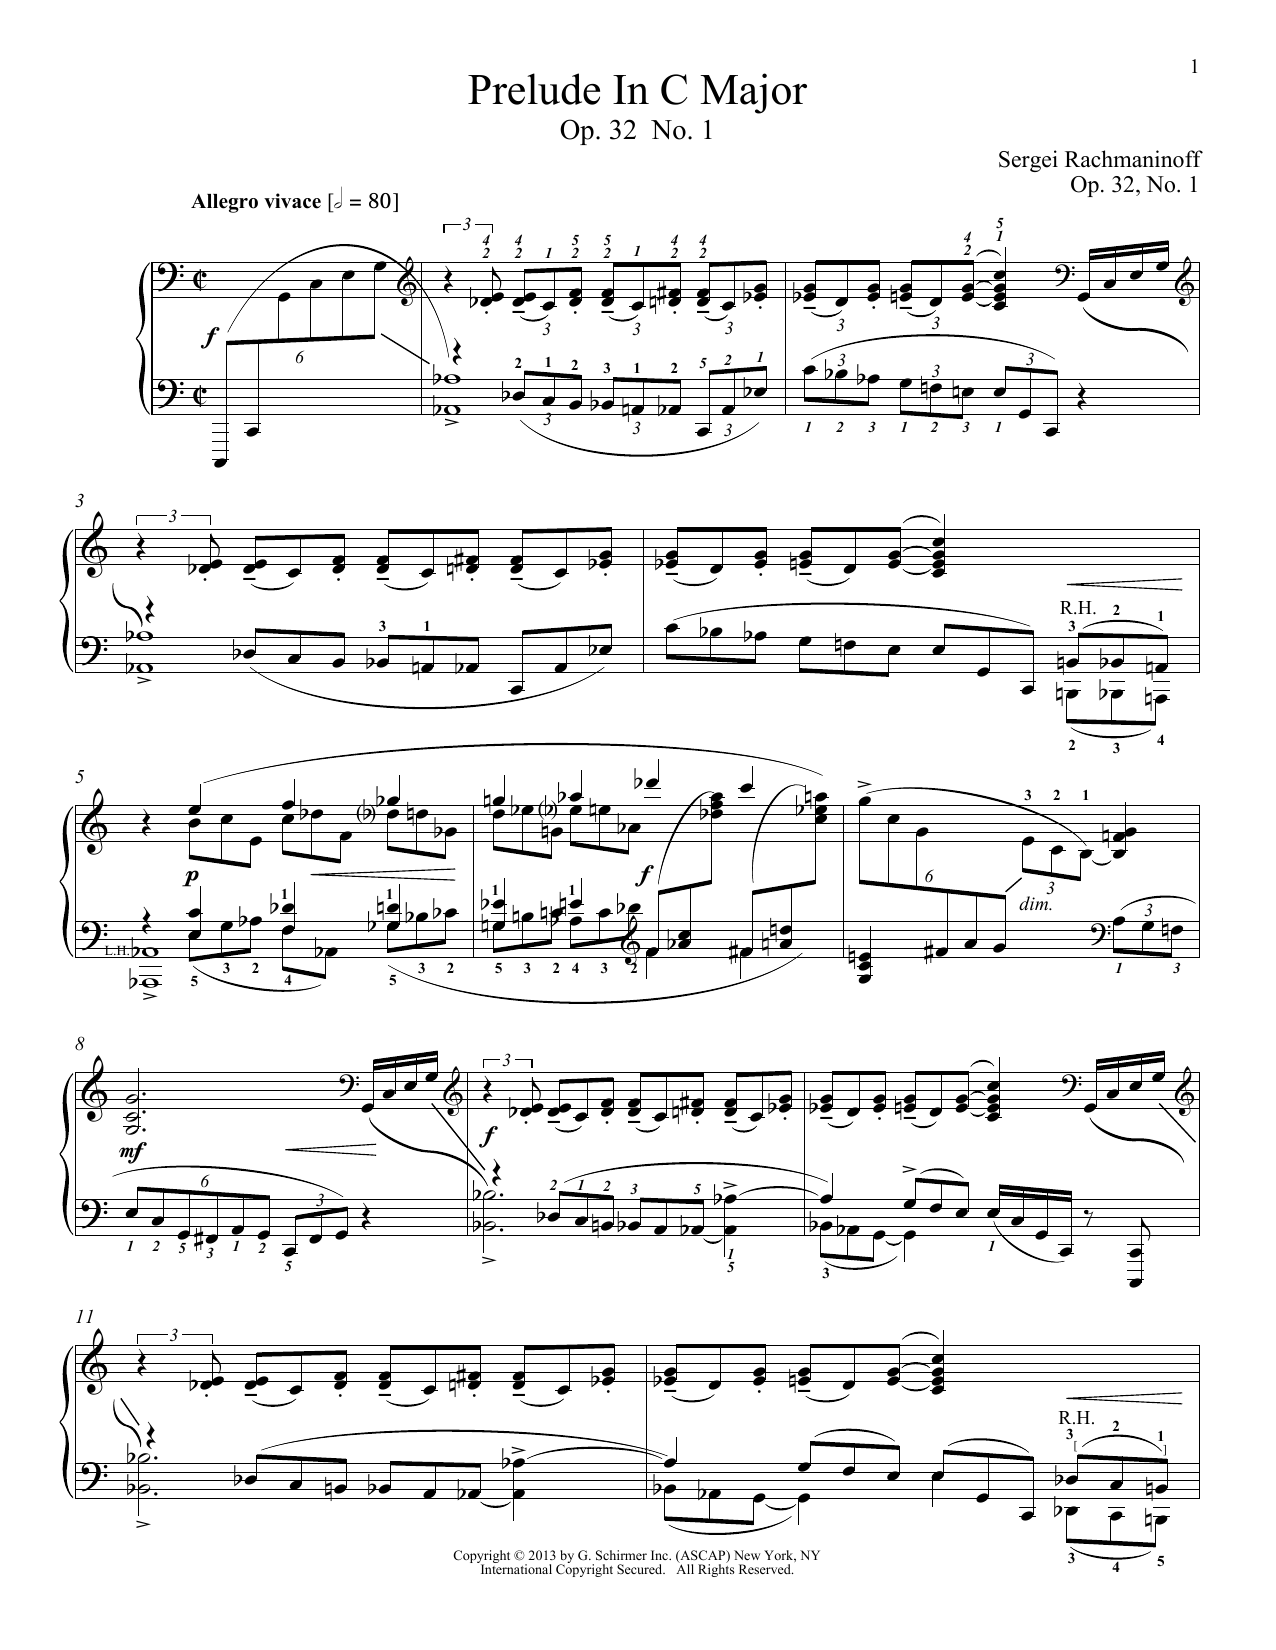 Prelude In C Major, Op. 32, No. 1 Sheet Music